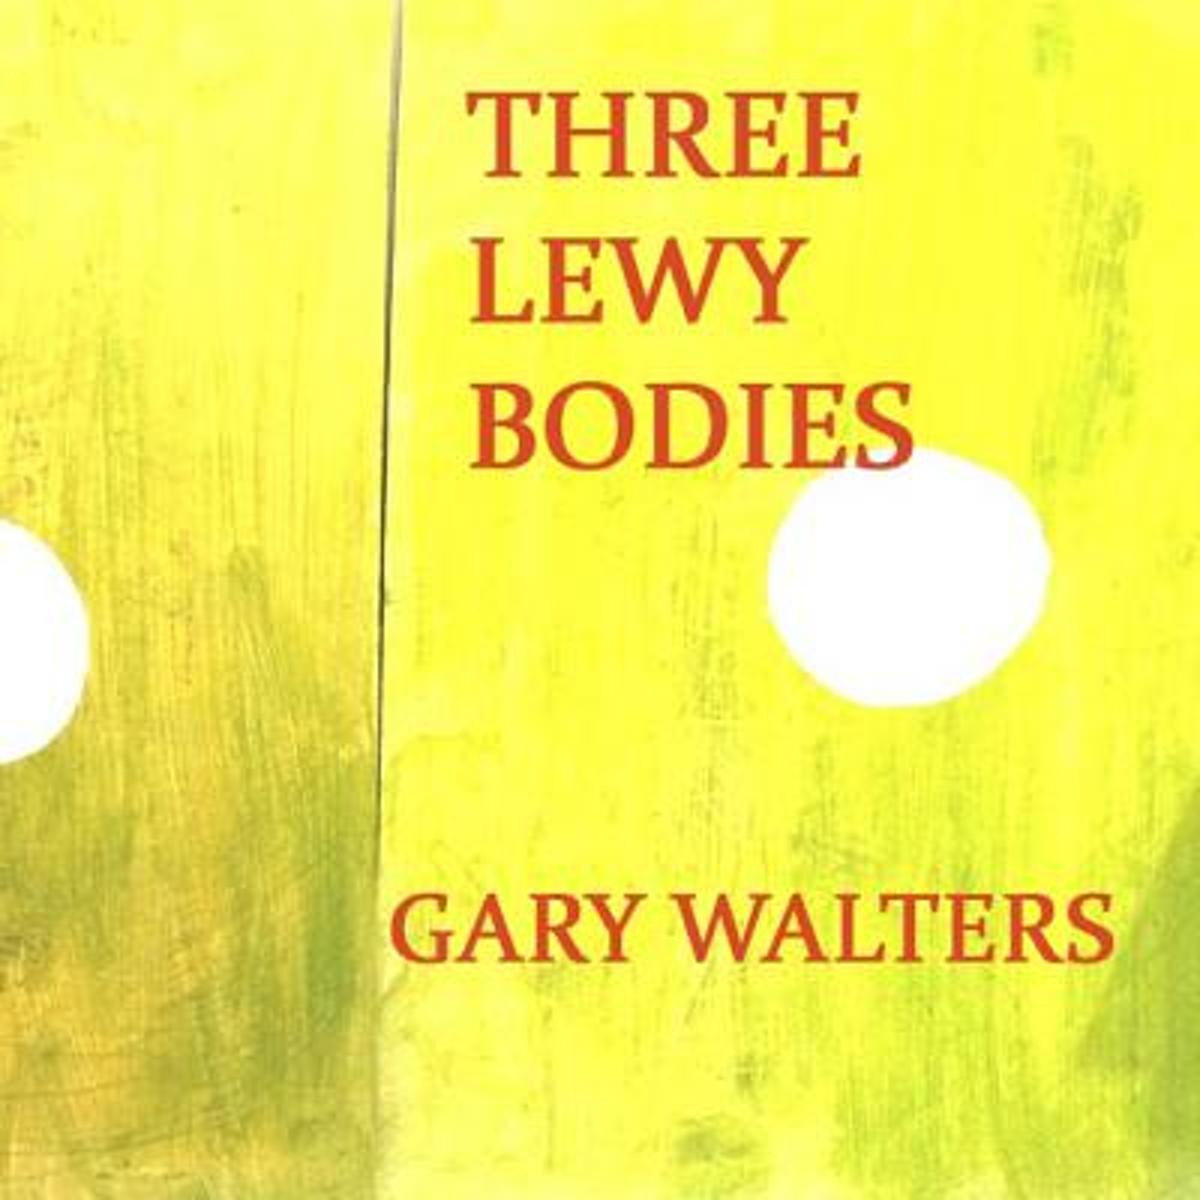 Three Lewy Bodies